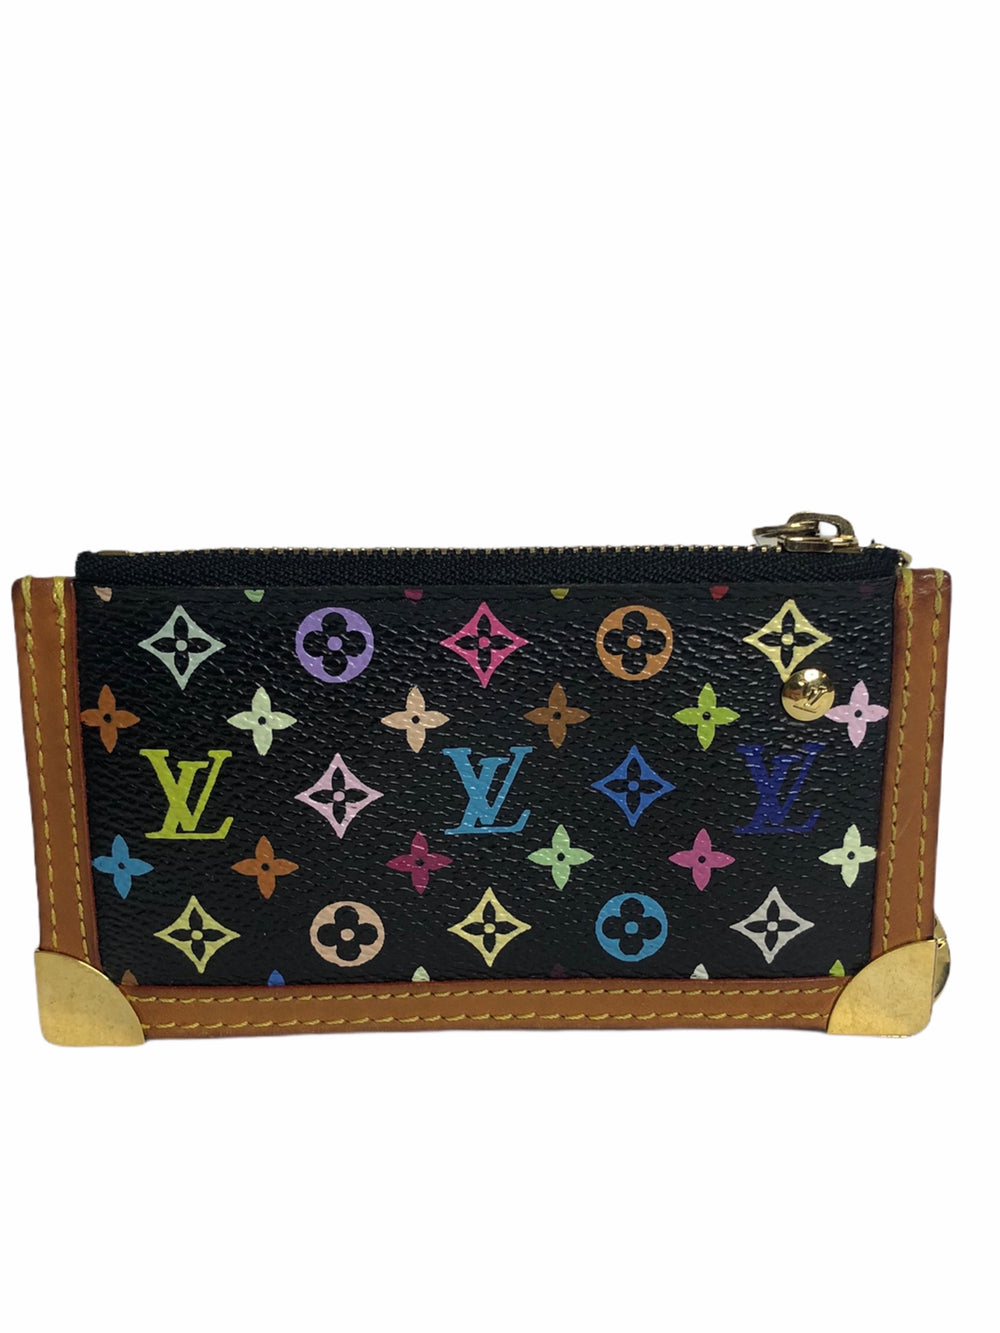 Louis Vuitton MultiColor Monogram Canvas Coin Purse  - As Seen on Instagram 18/11/20